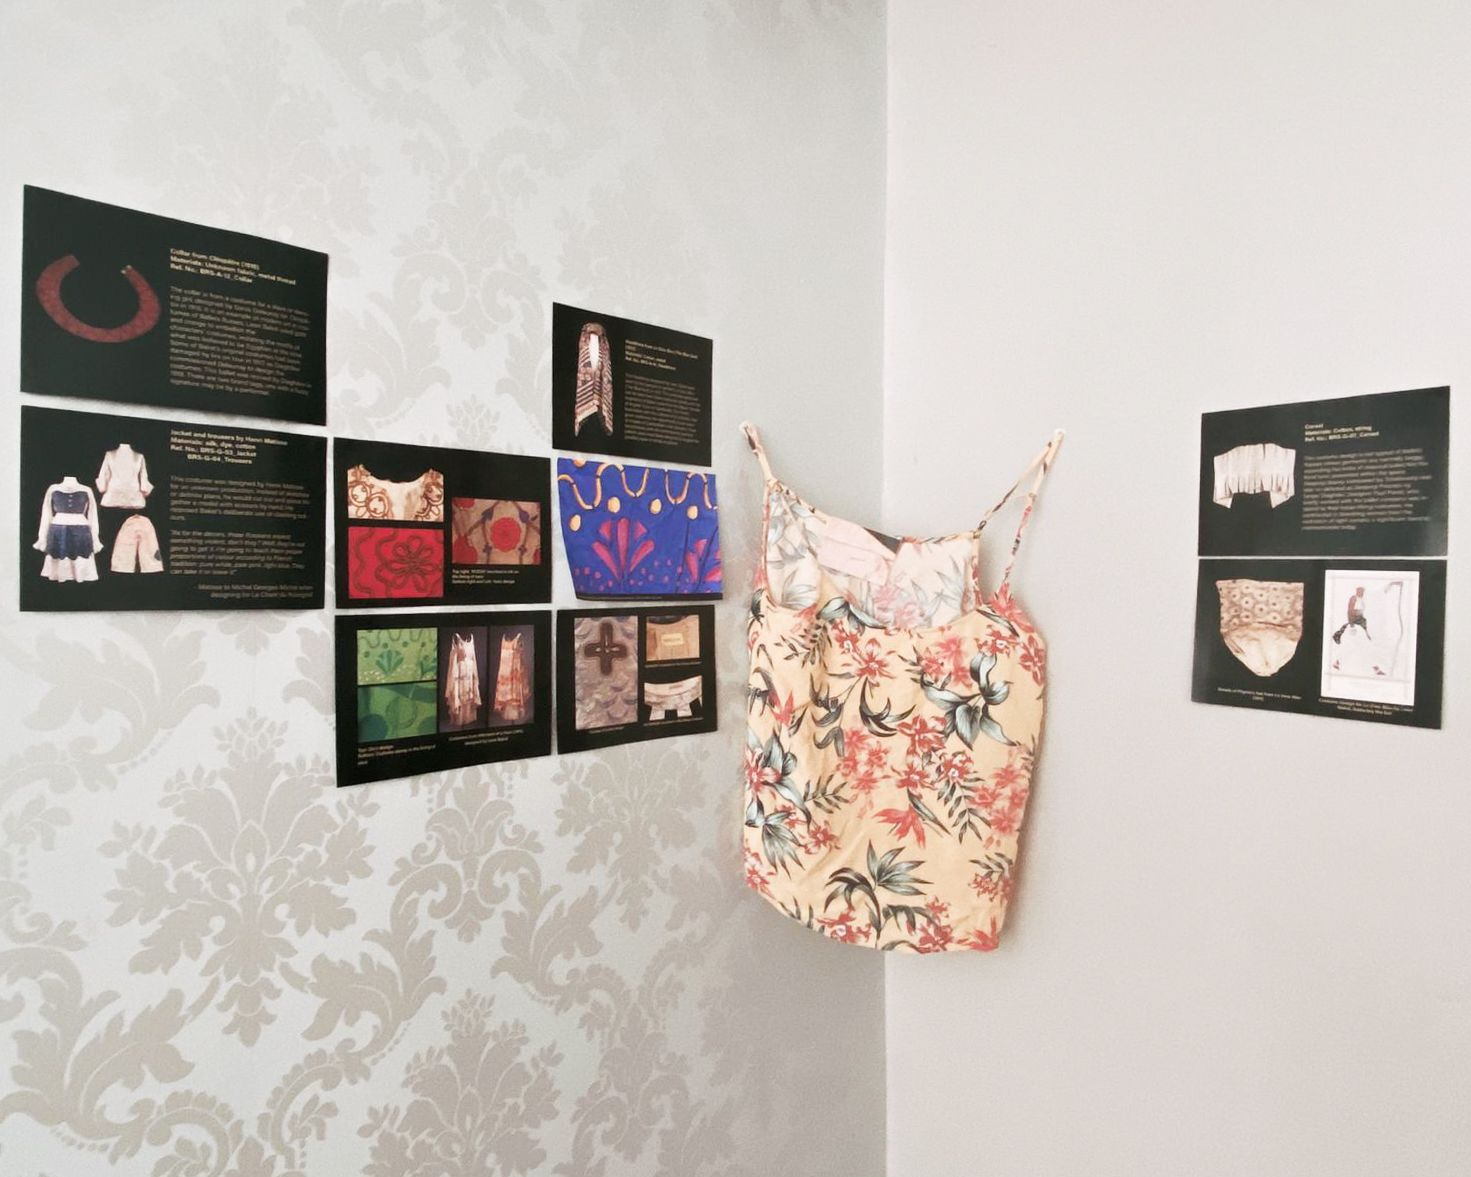 installation view of Analogue (Mail) exhibition in a living room